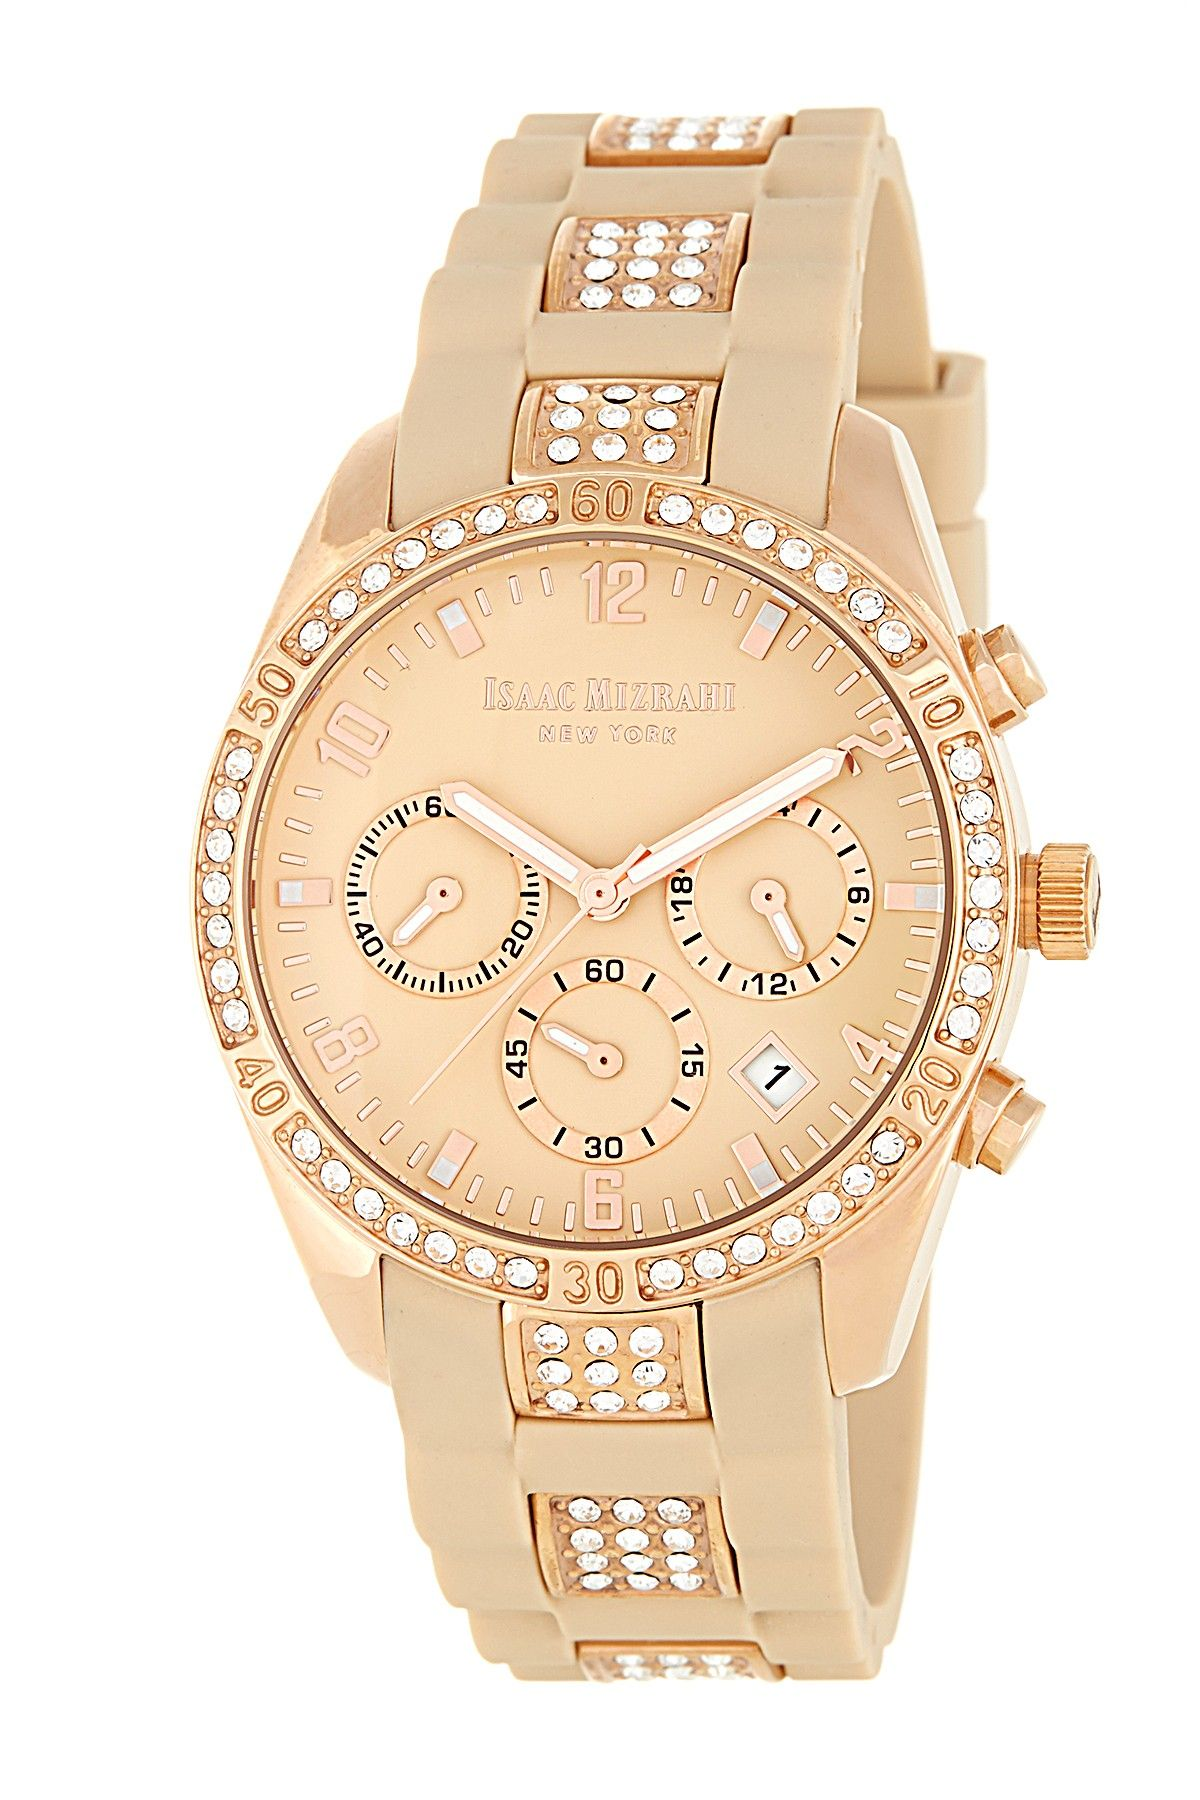 Isaac Mizrahi Pave Silicone Strap Watch Nordstrom Rack